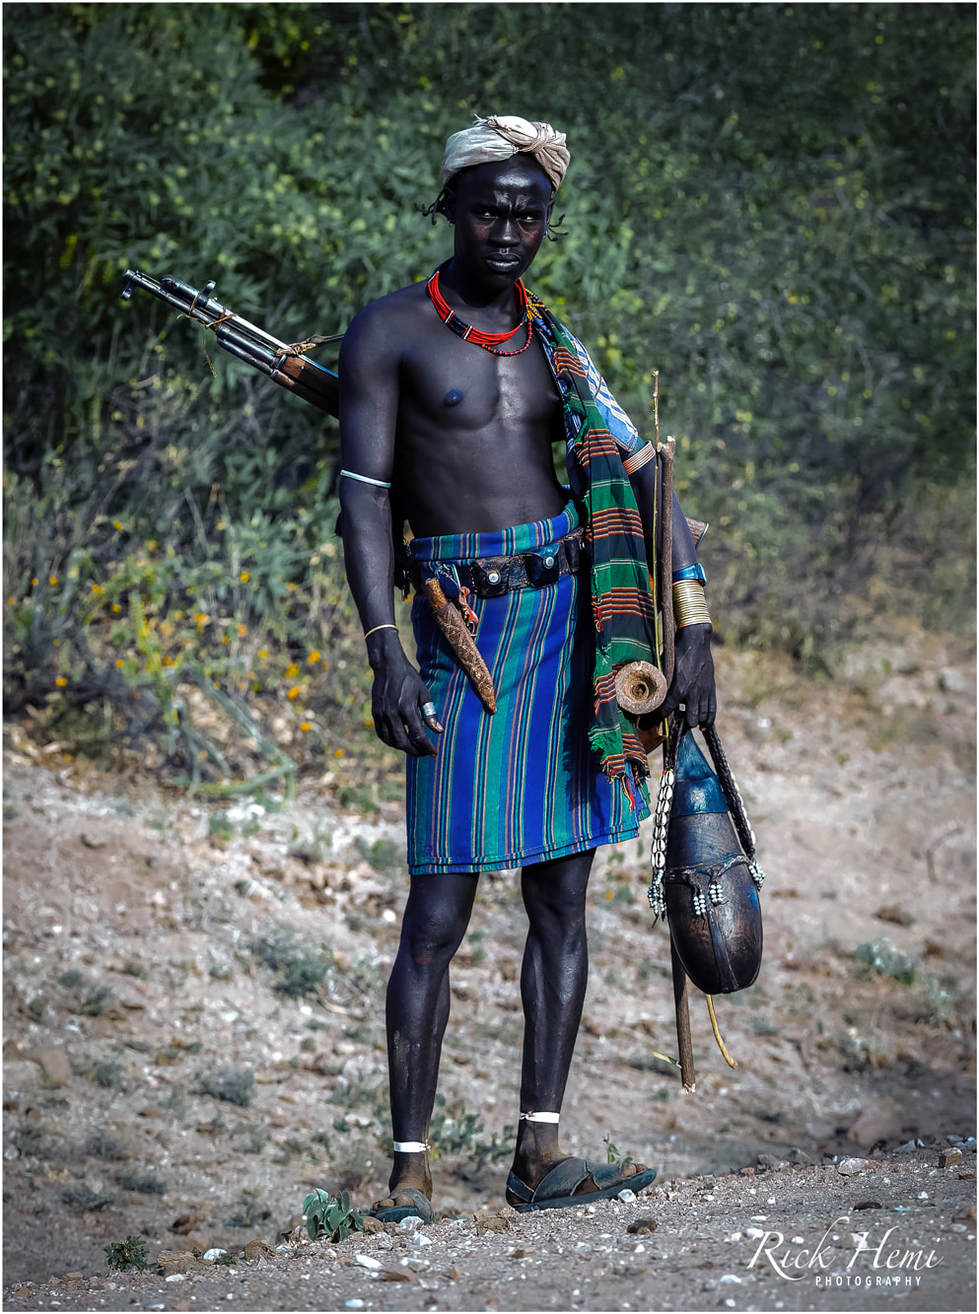 travel and transit Africa, overland travel Africa, solo travel Africa,tribal Africa, culture Africa, ethnic cultures Africa,Rick Hemi